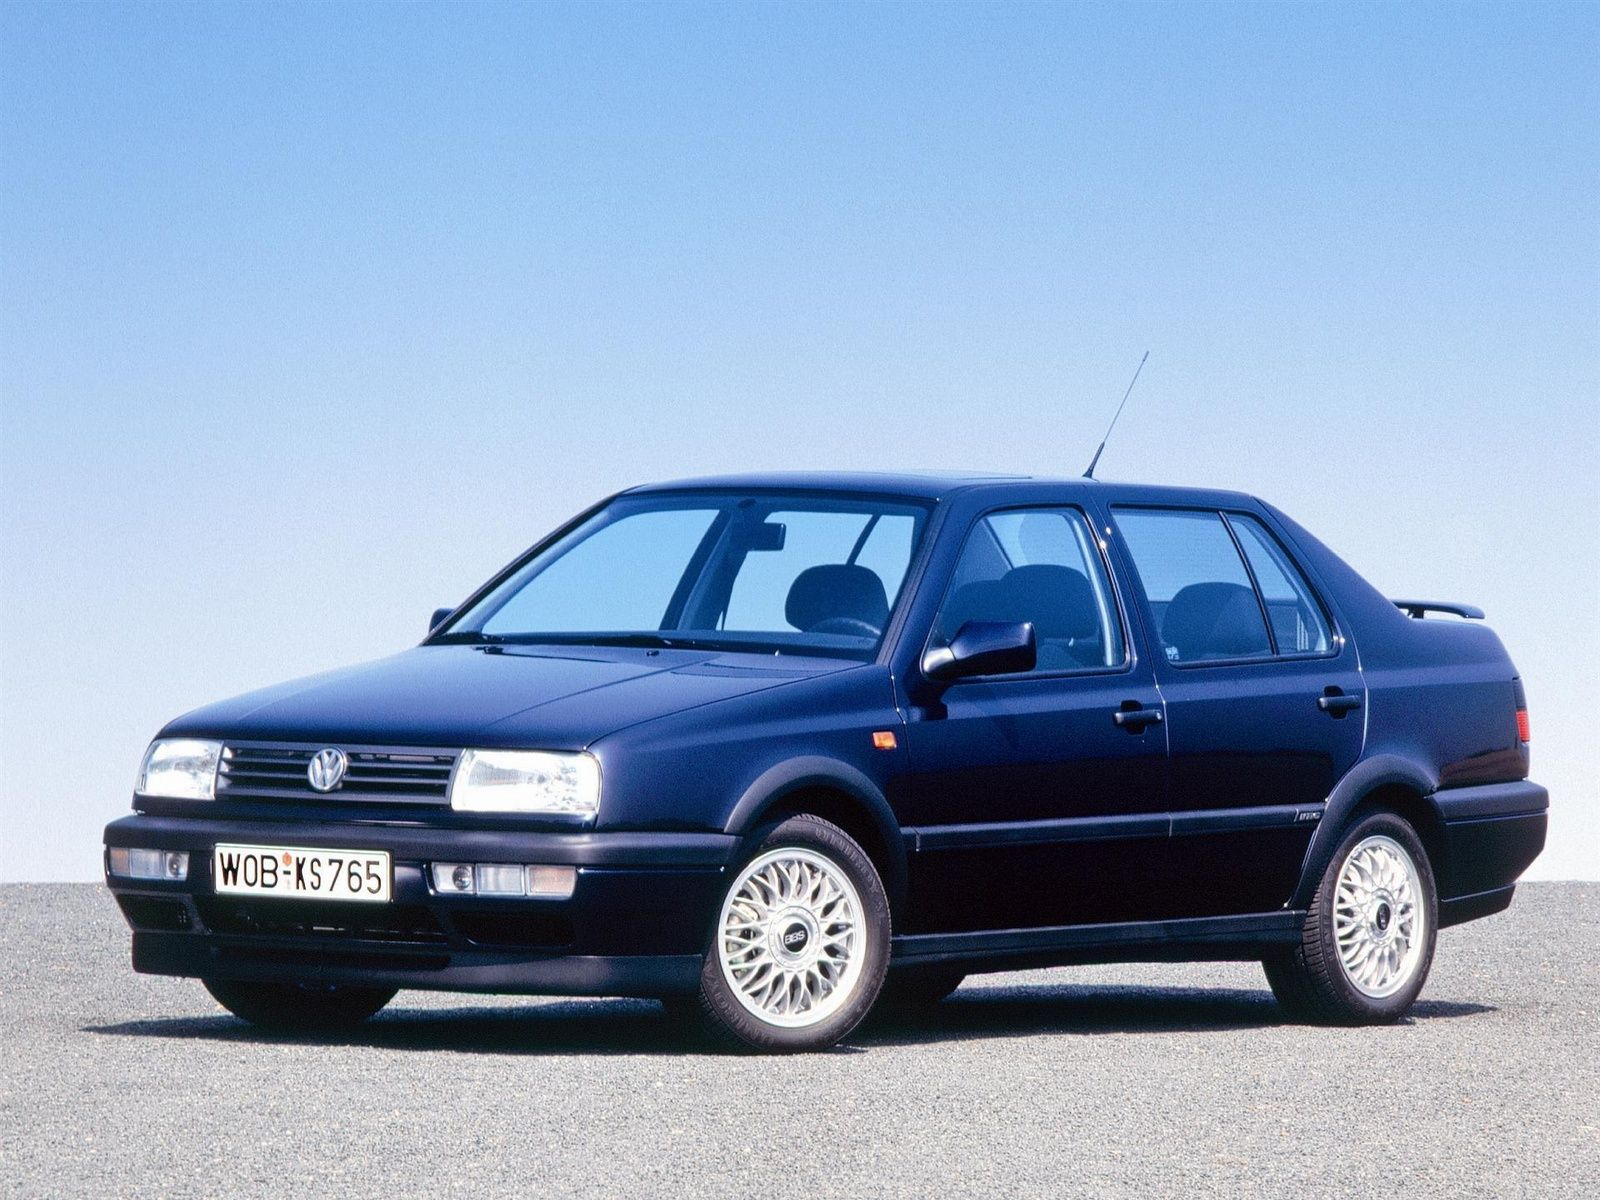 Volkswagen Gti Vr6 Specs >> Volkswagen Vento VR6:picture # 9 , reviews, news, specs, buy car